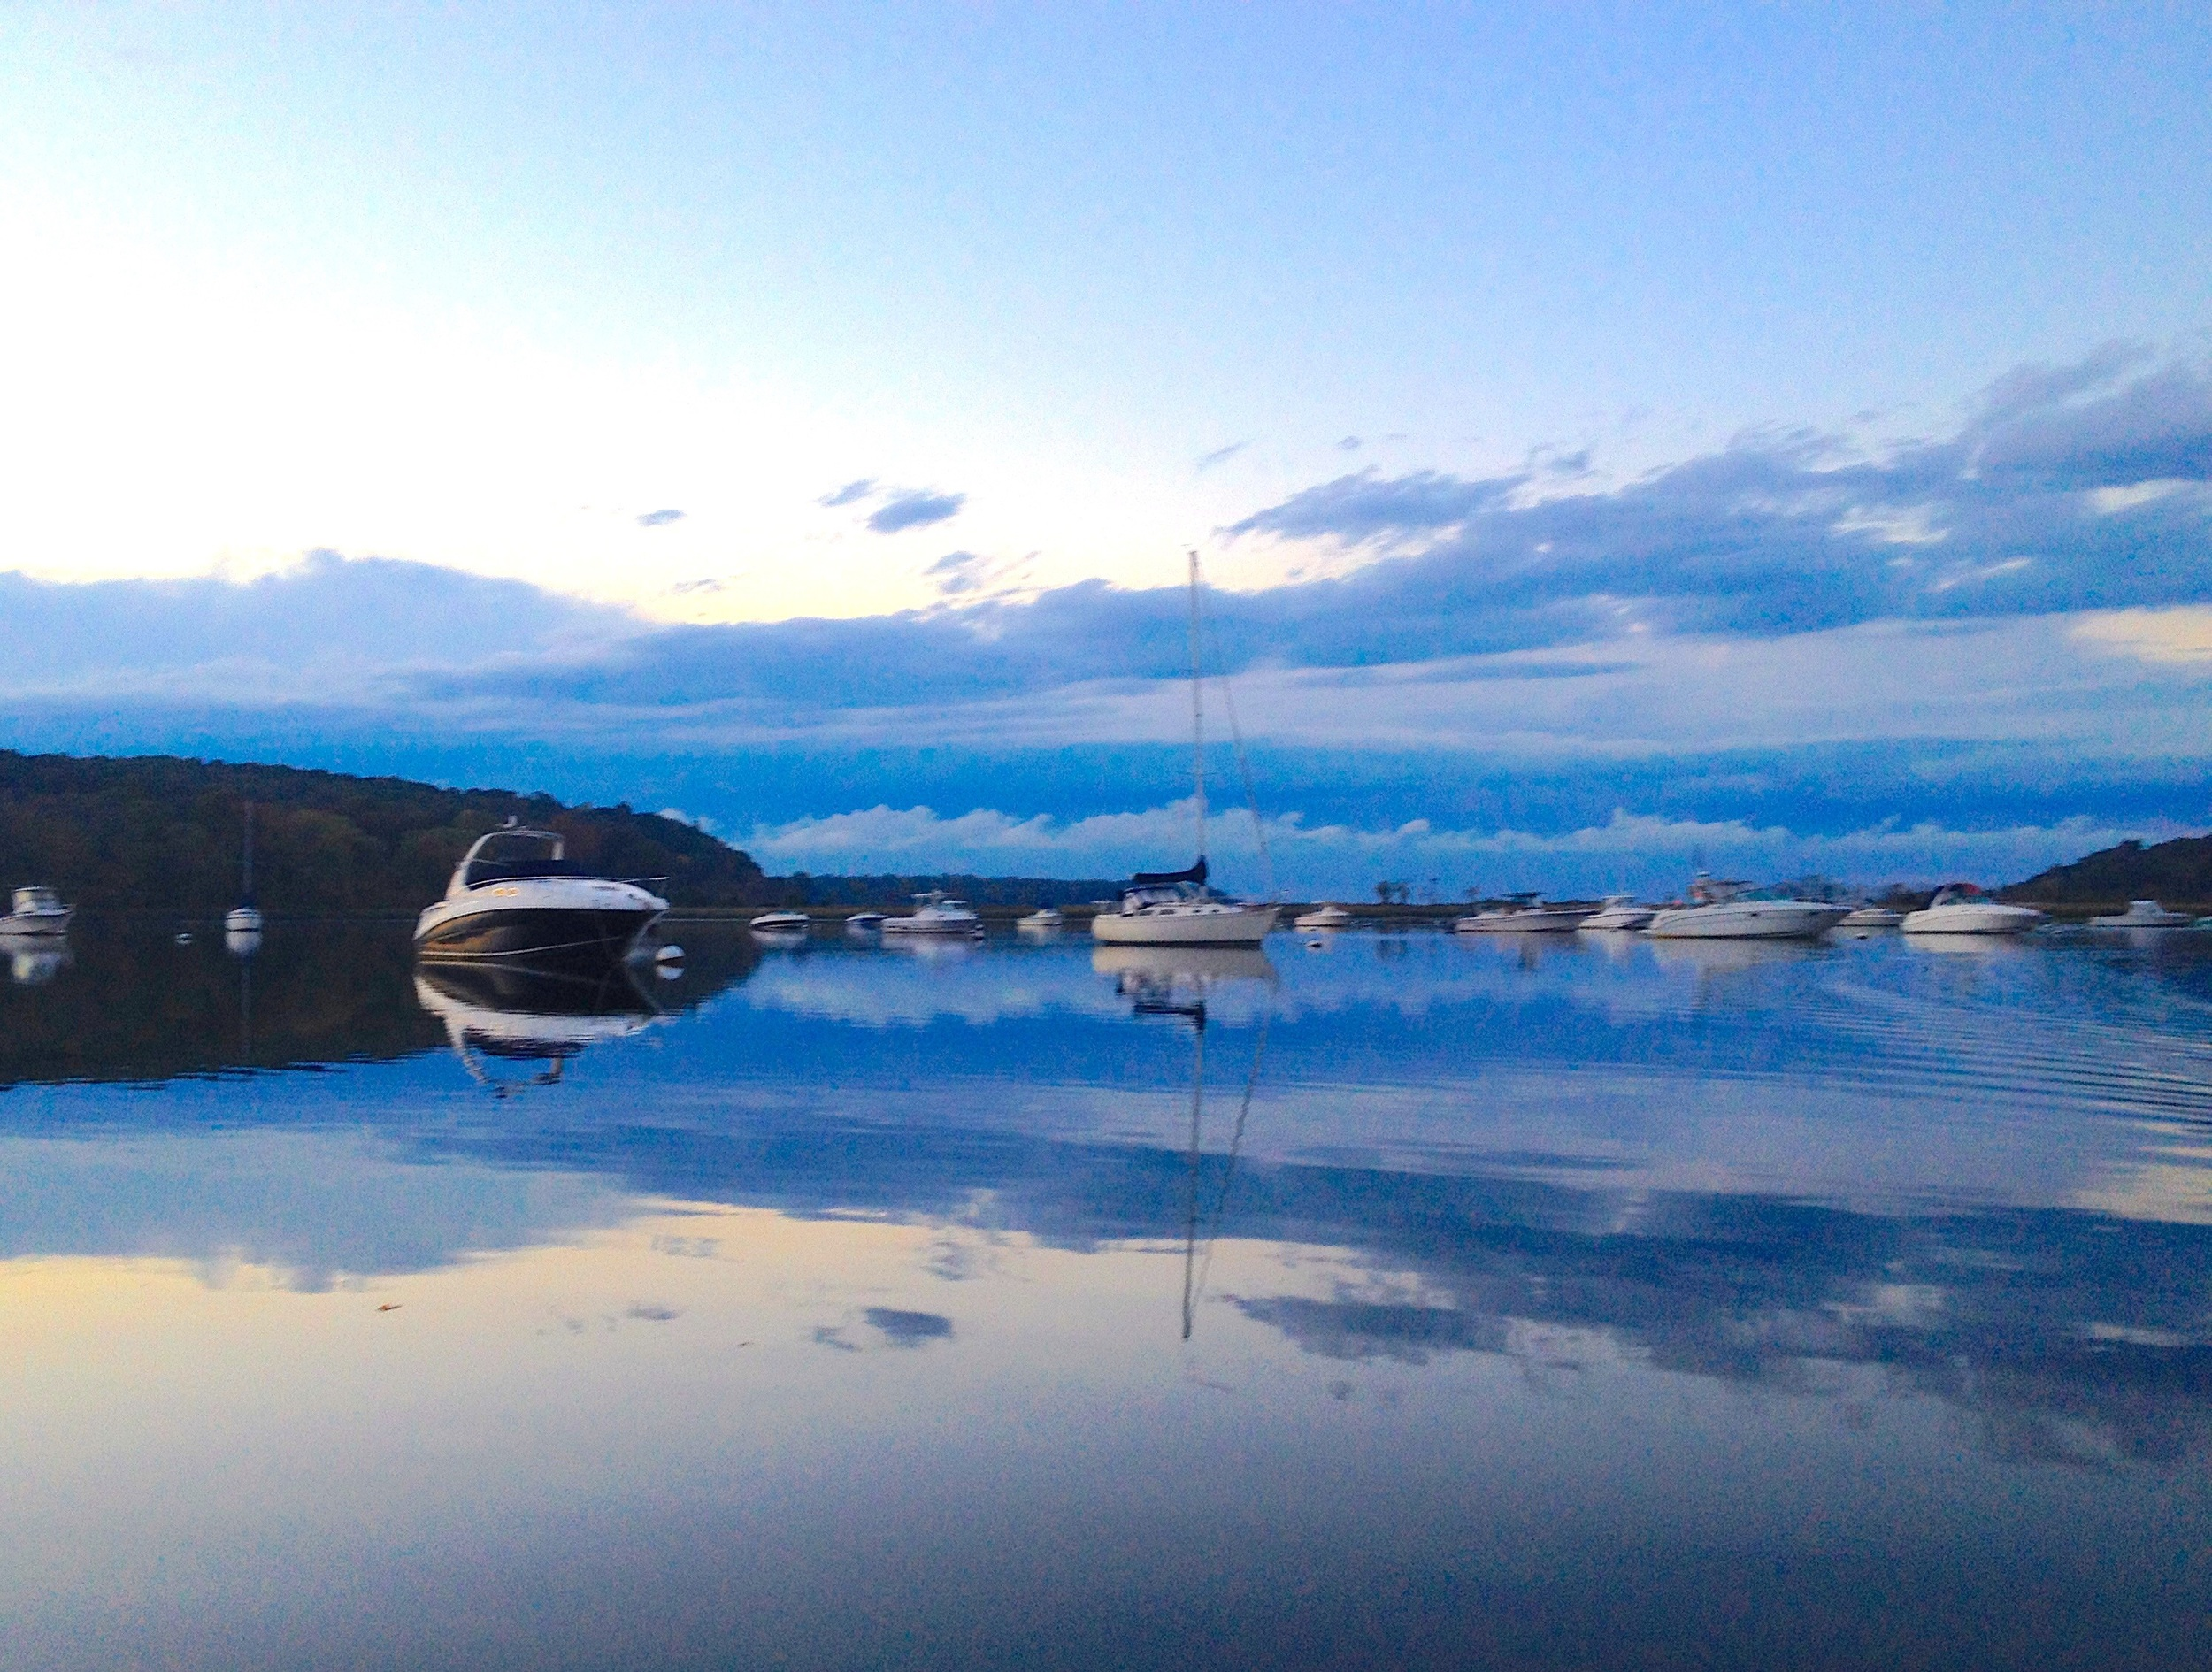 The view after sunset at Cold Spring Harbor tonight. Tomorrow we sail for Oyster Bay. iPhone 4S.